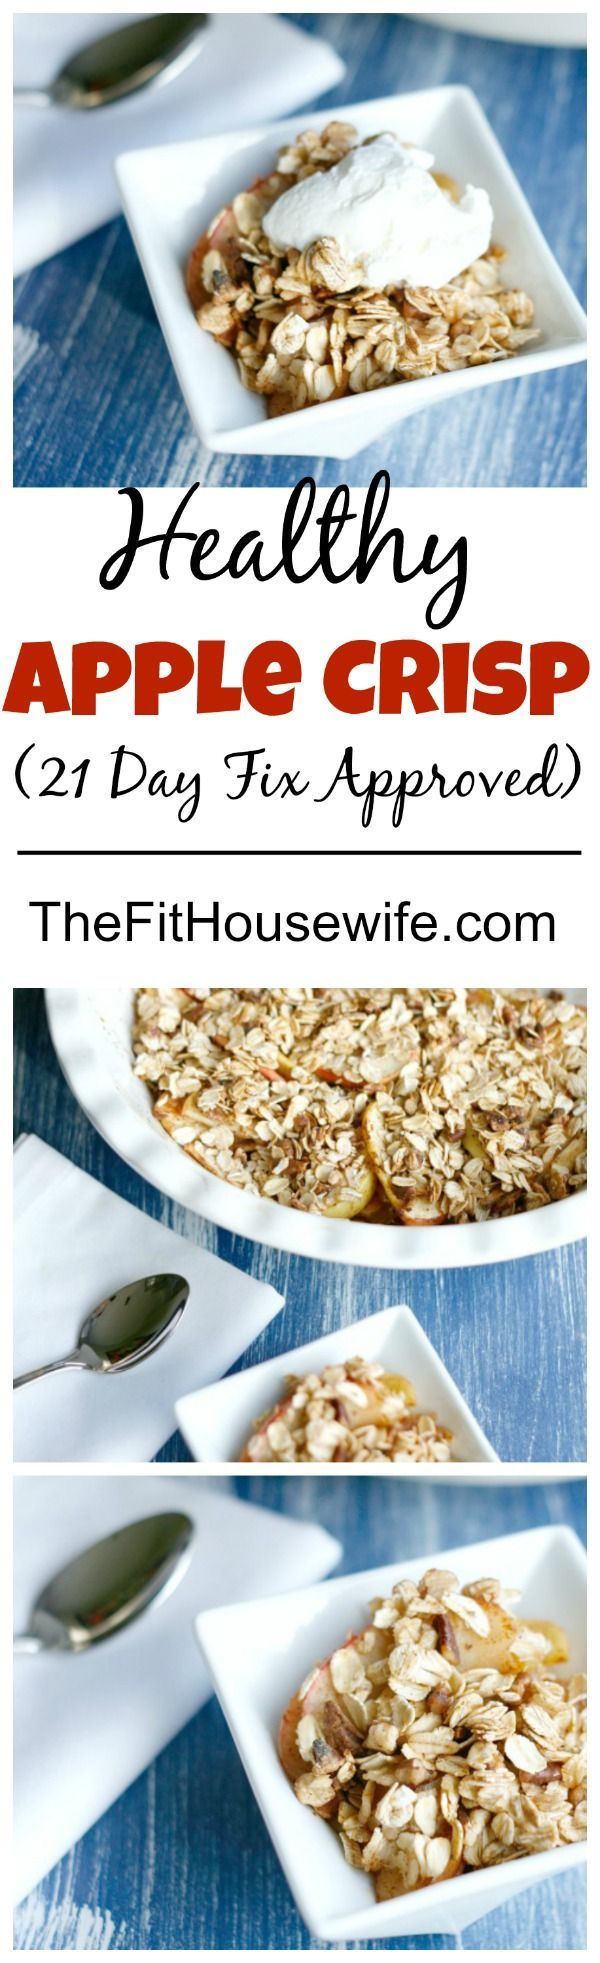 Healthy Apple Crisp. This apple crisp is made with healthy ingredients and is 21 Day Fix approved! The perfect dessert for fall and winter.